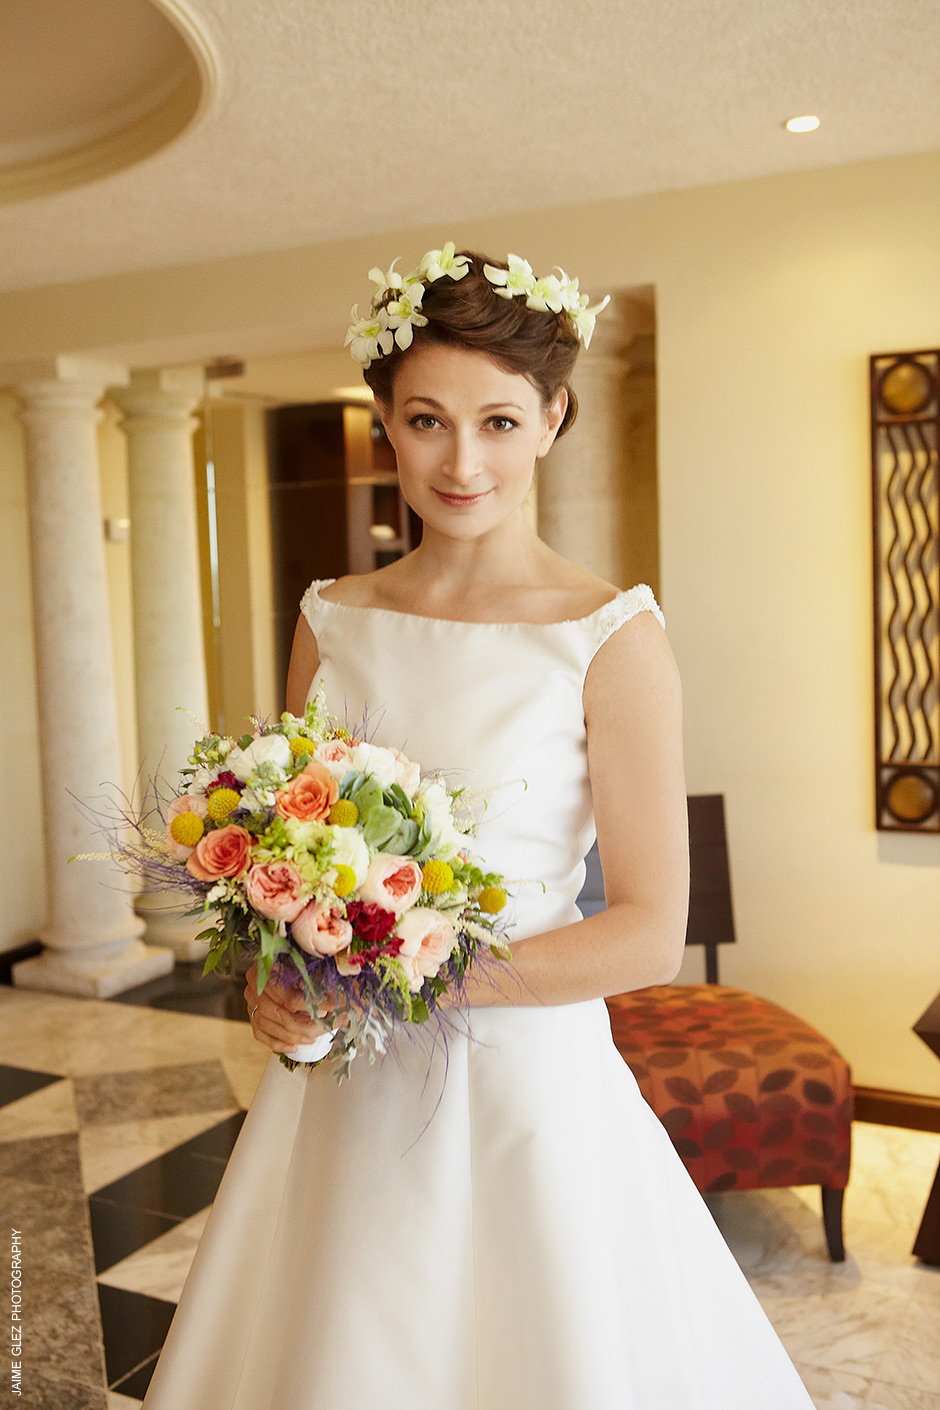 Divinely gorgeous and natural bride surrounded by summer flowers.